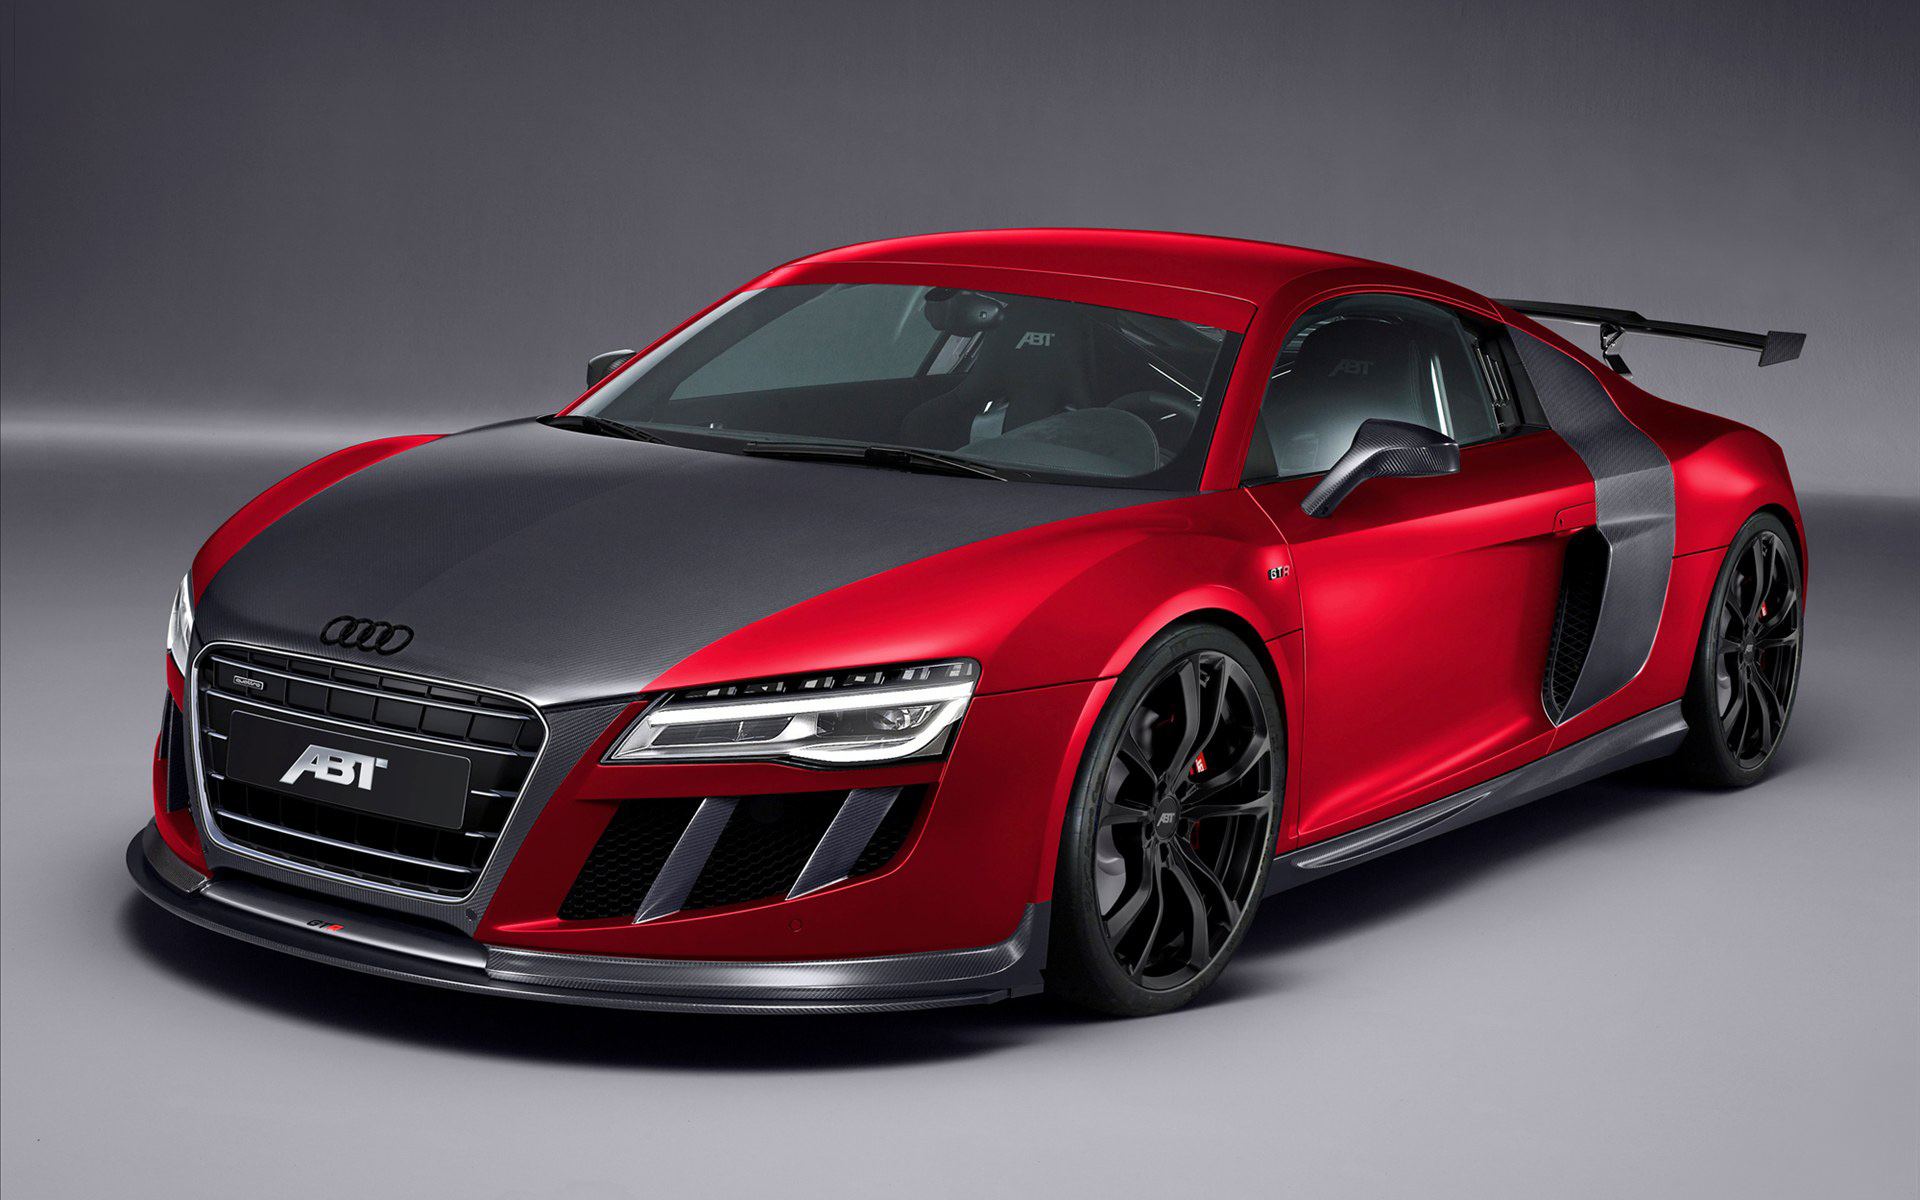 2013 Abt Audi R8 Gtr Wallpaper Hd Car Wallpapers Id 3306